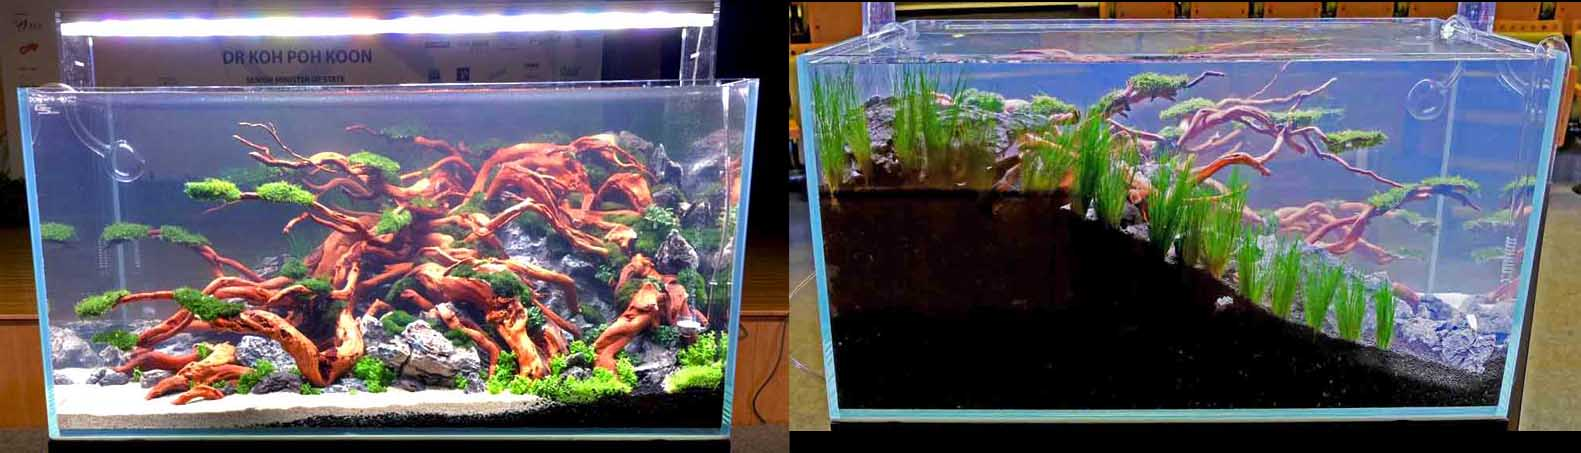 Deep soil aquascape